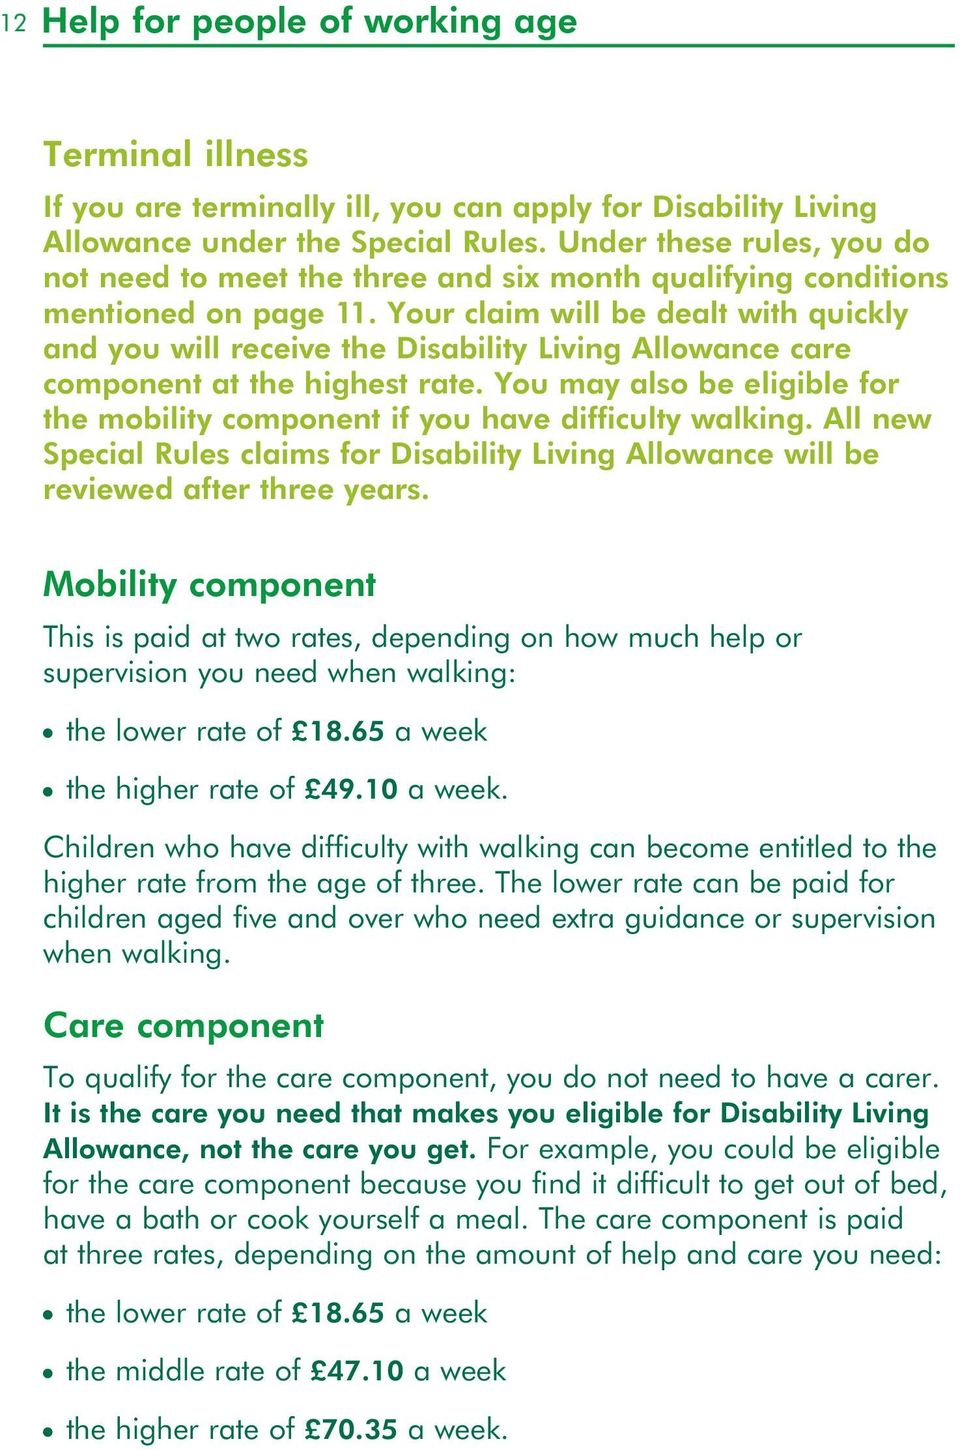 Your claim will be dealt with quickly ad you will receive the Disability Livig Allowace care compoet at the highest rate.